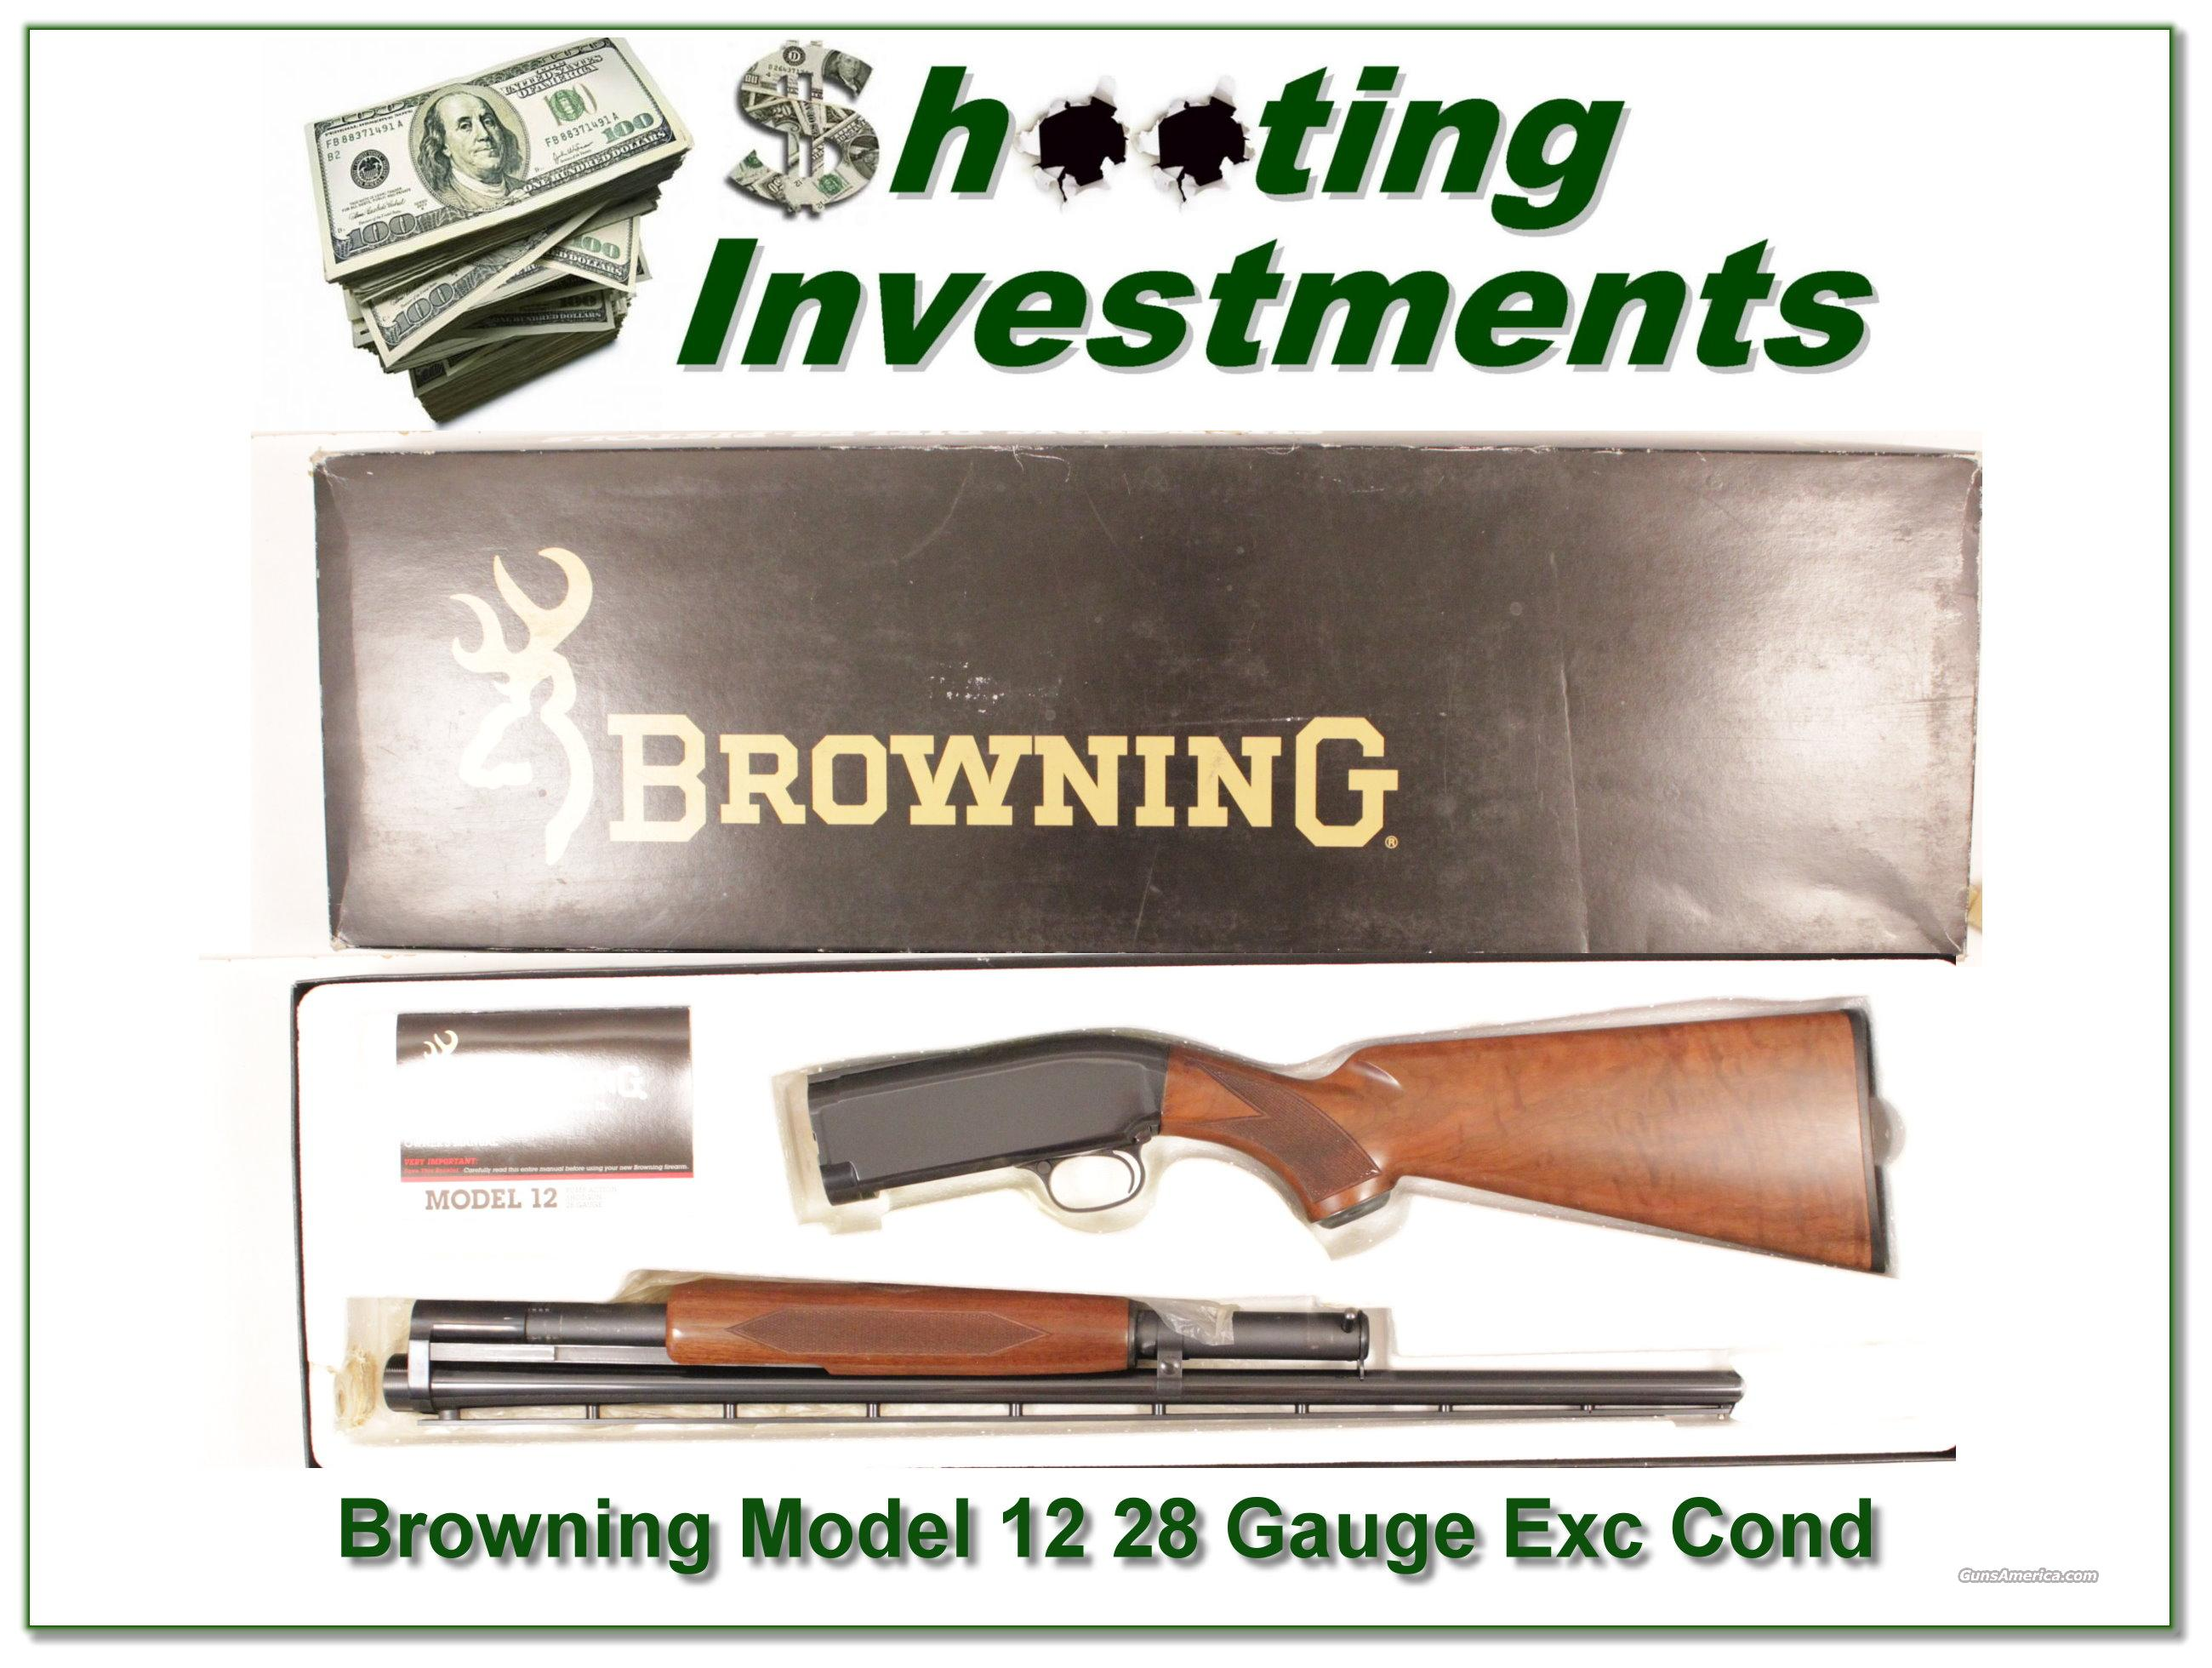 Browning Model 12 28 Gauge Exc Cond in box!  Guns > Rifles > Browning Rifles > Bolt Action > Hunting > Blue